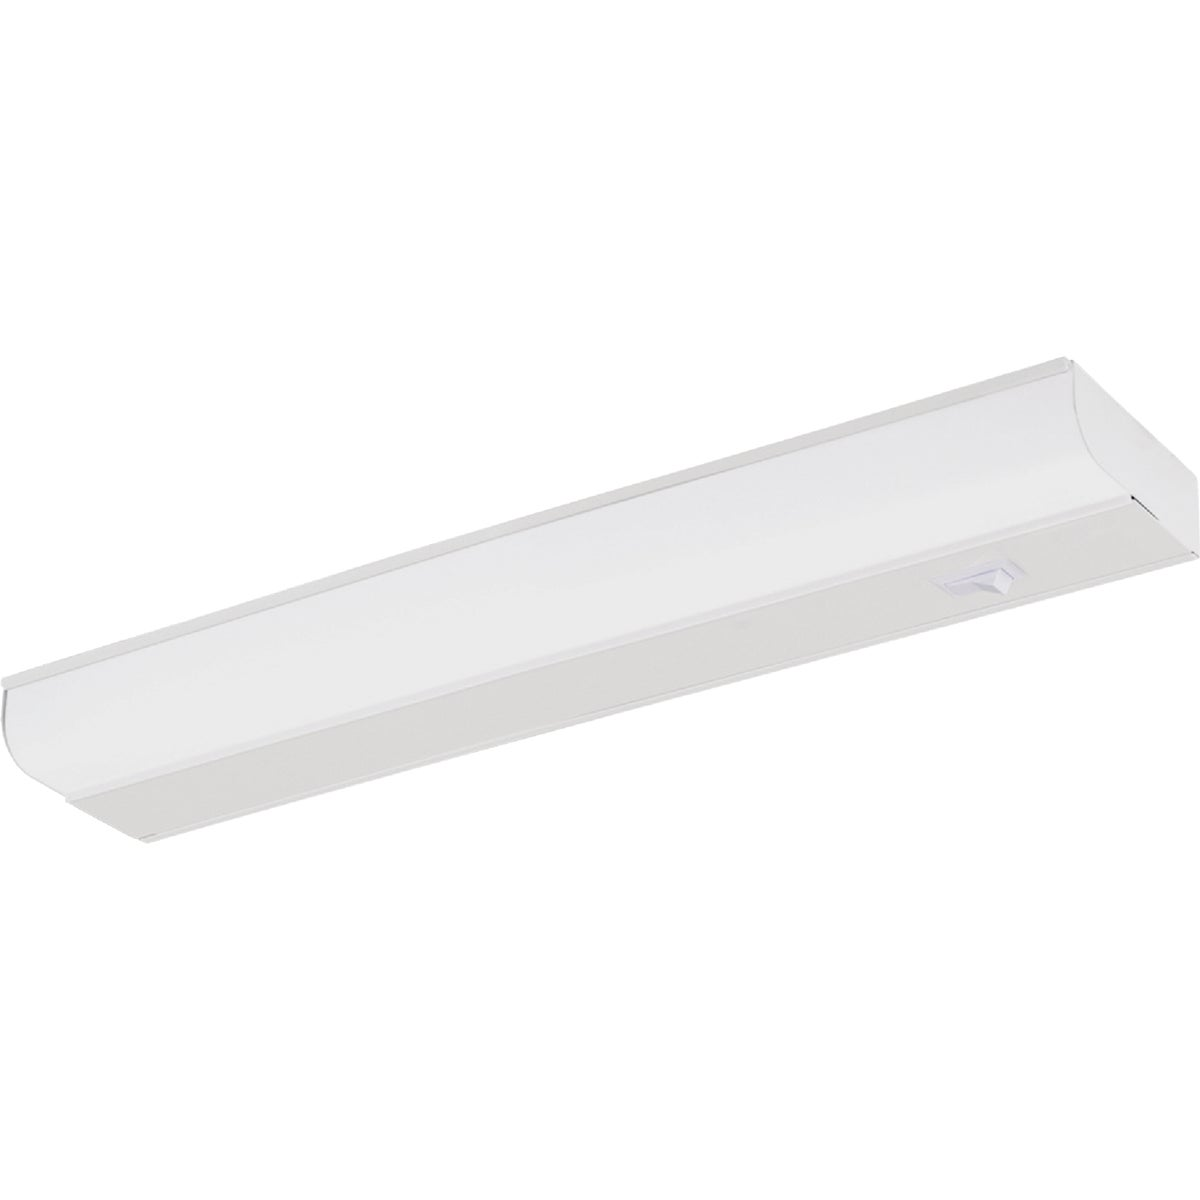 "18"" UNDERCABINET LIGHT - G9318D-T8-WH-I by Good Earth Lighting"